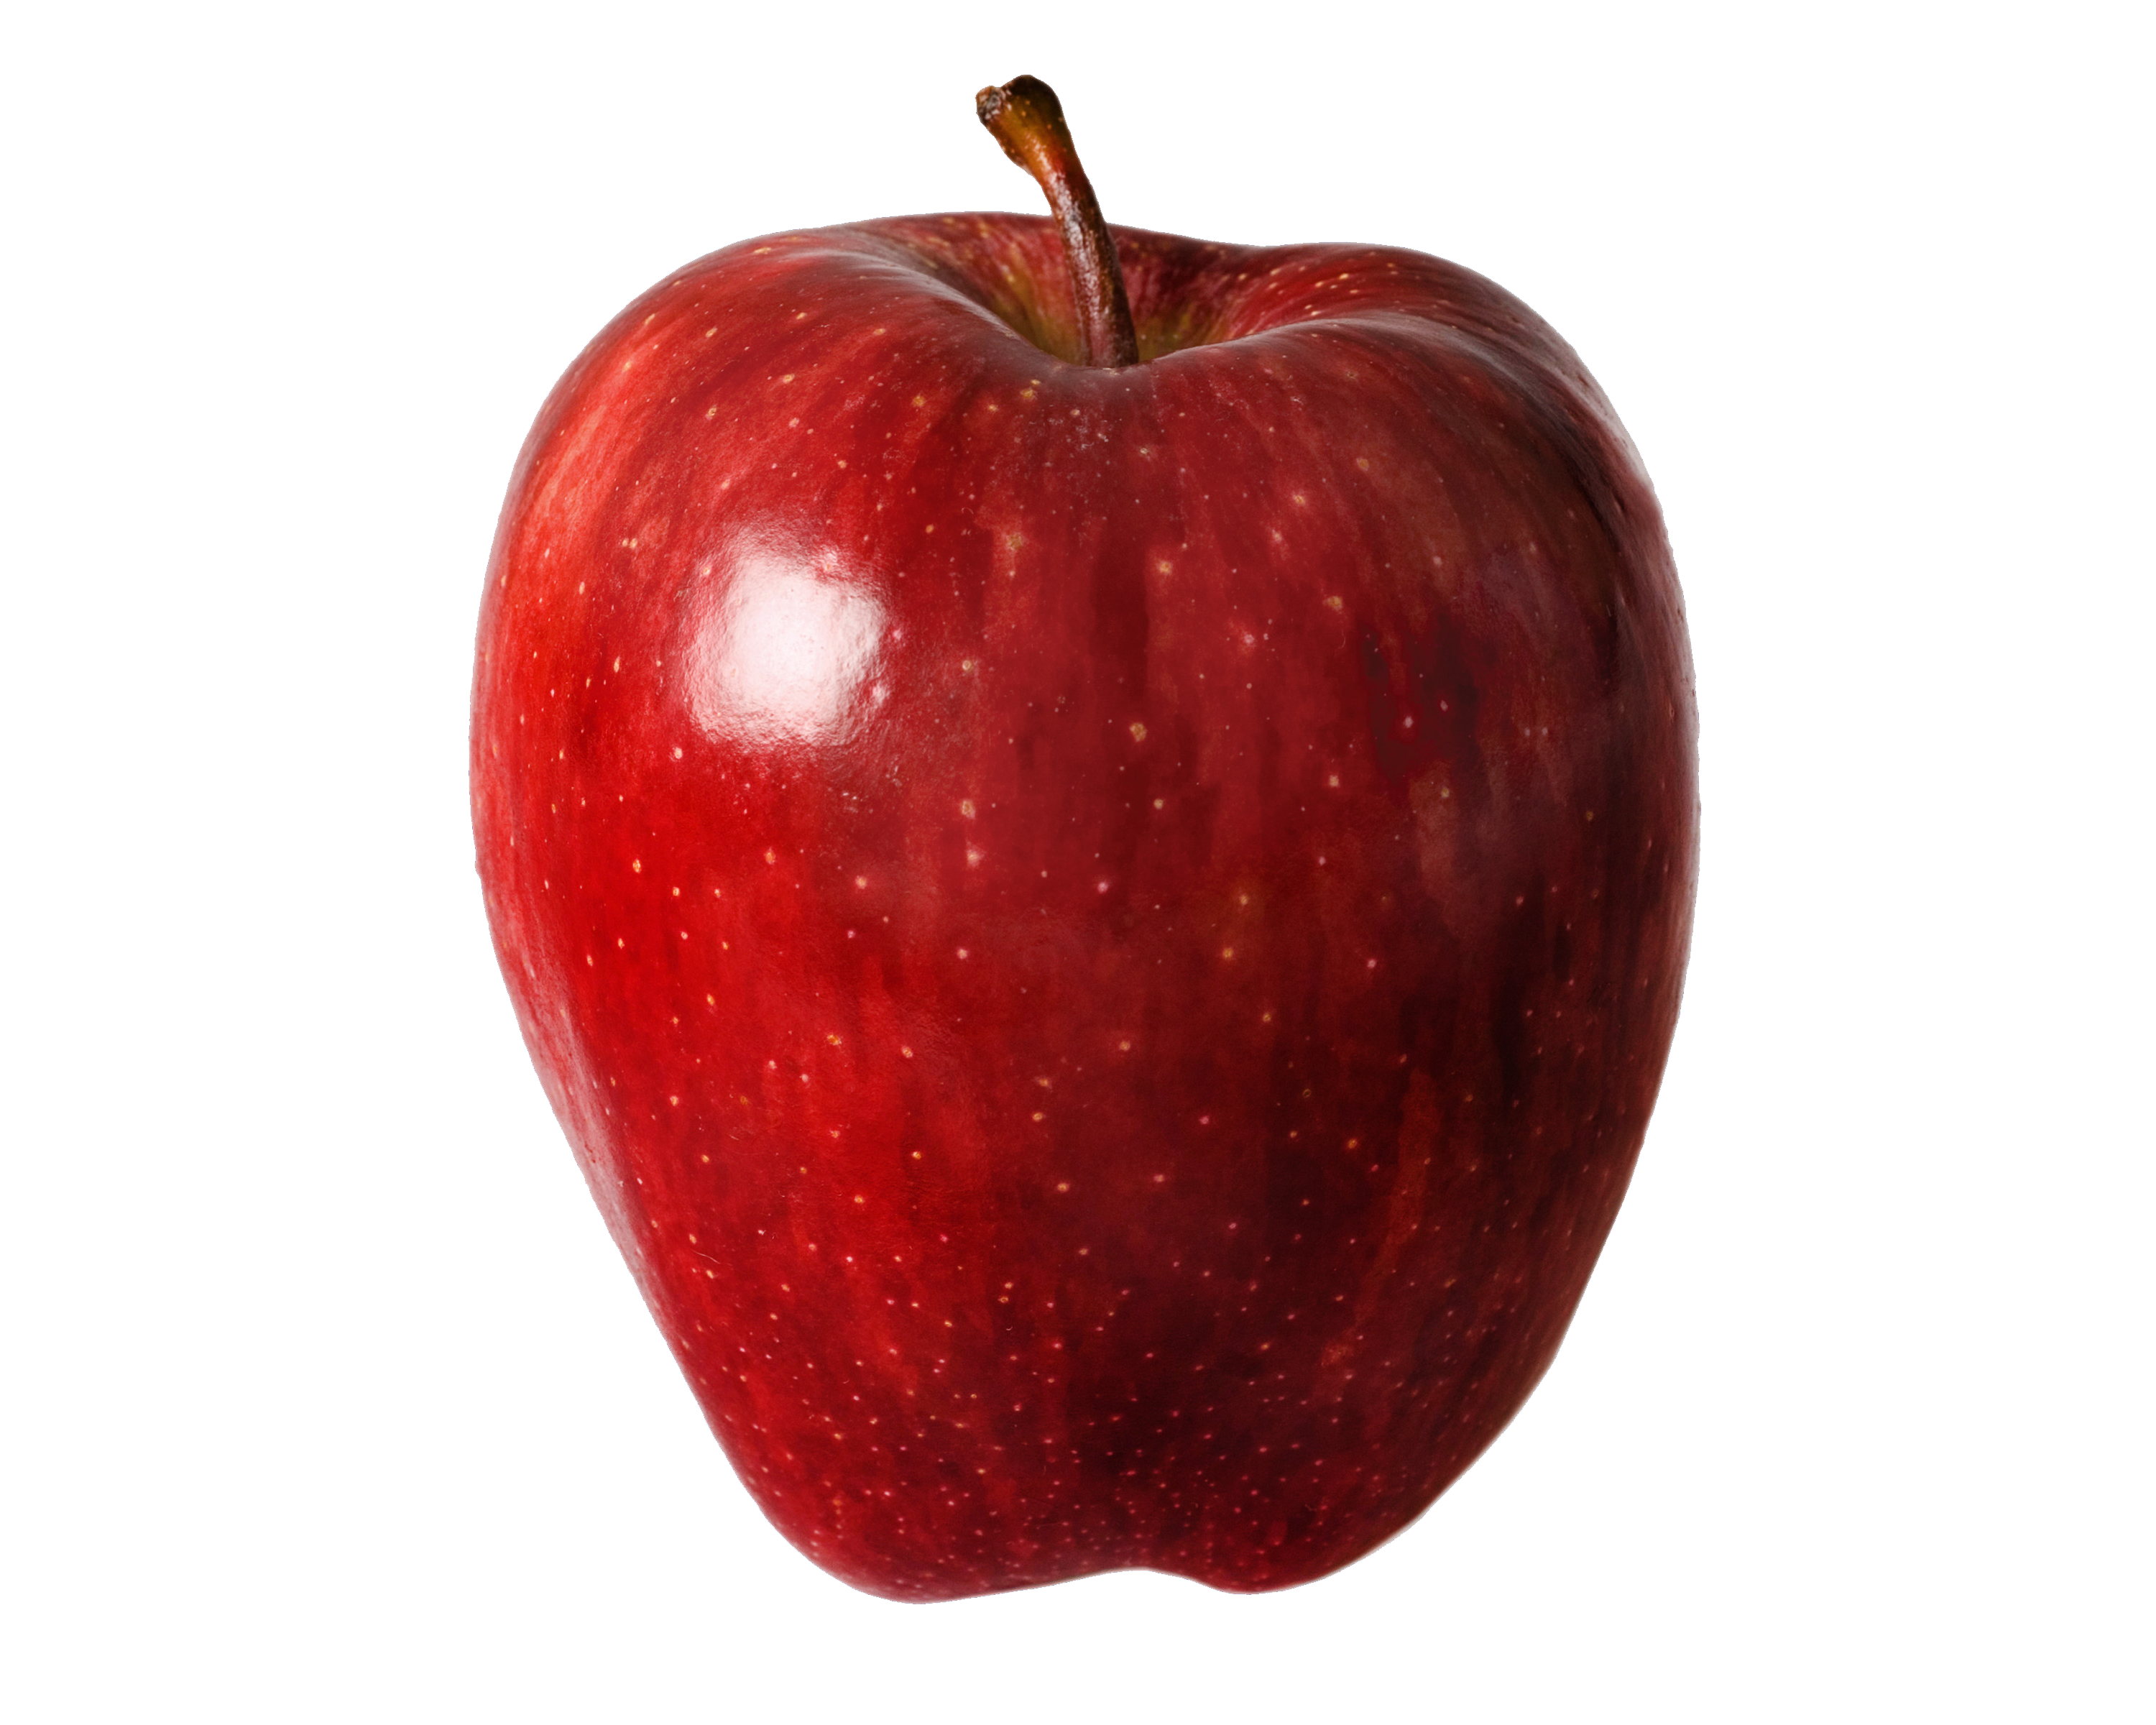 Red apples png. Apple s image purepng